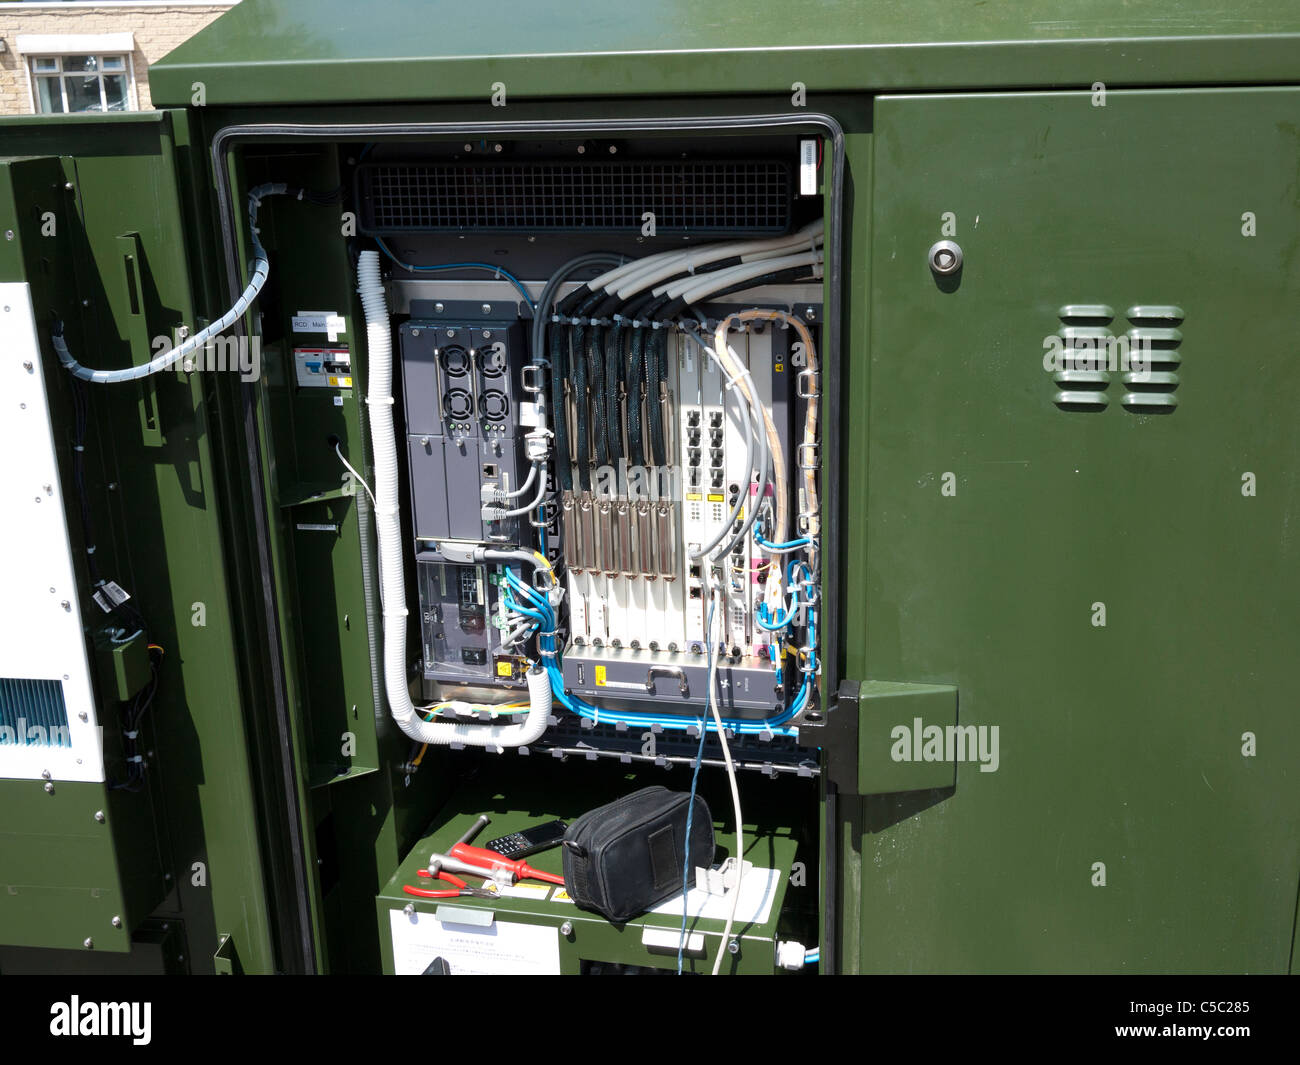 Broadband Fibre Optics junction box, England, UK. - Stock Image